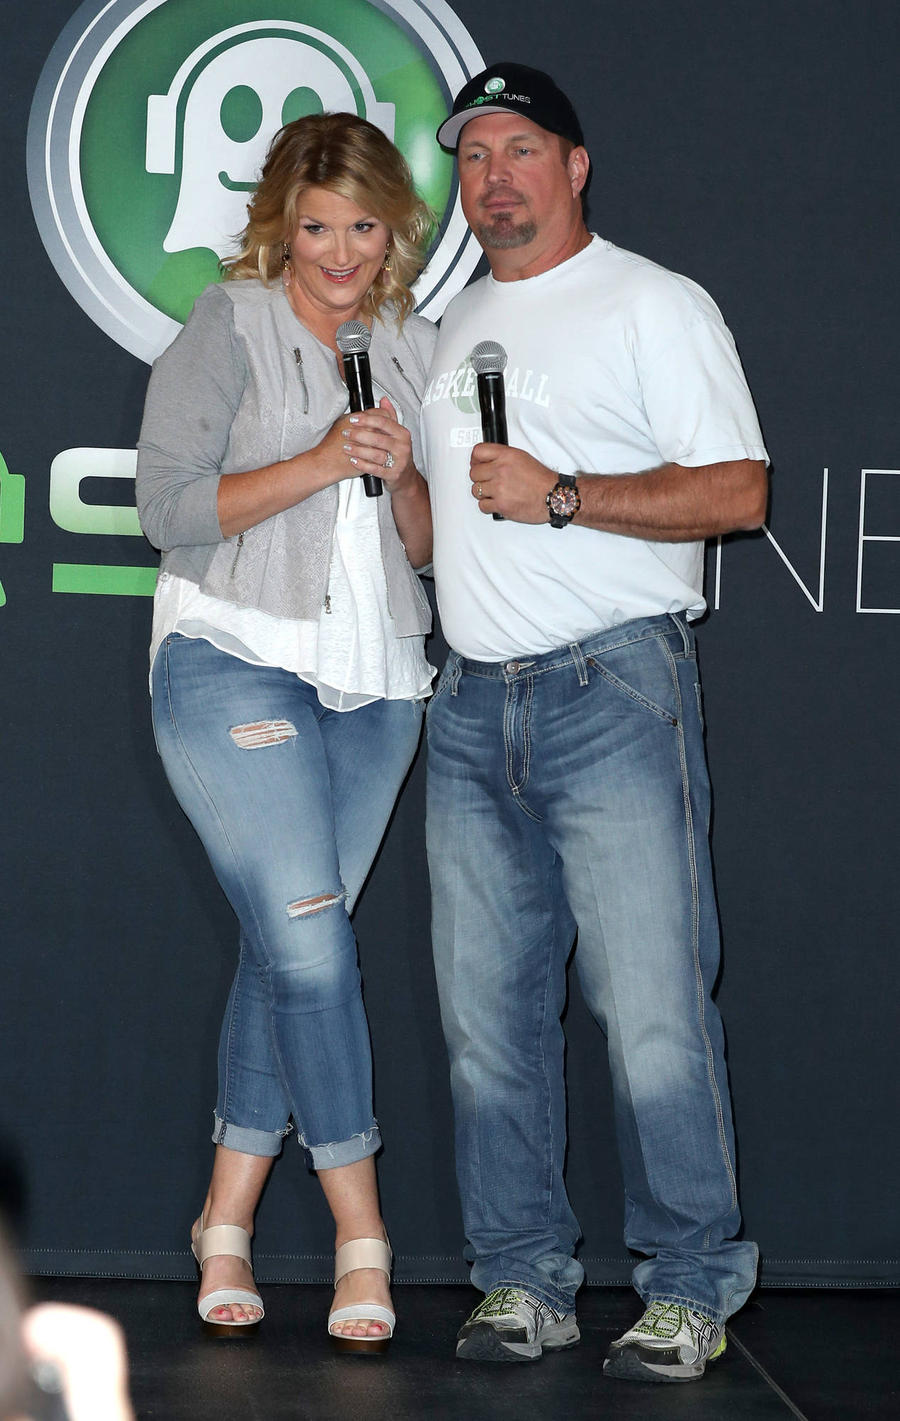 Latest Garth Brooks News and Archives | Contactmusic.com